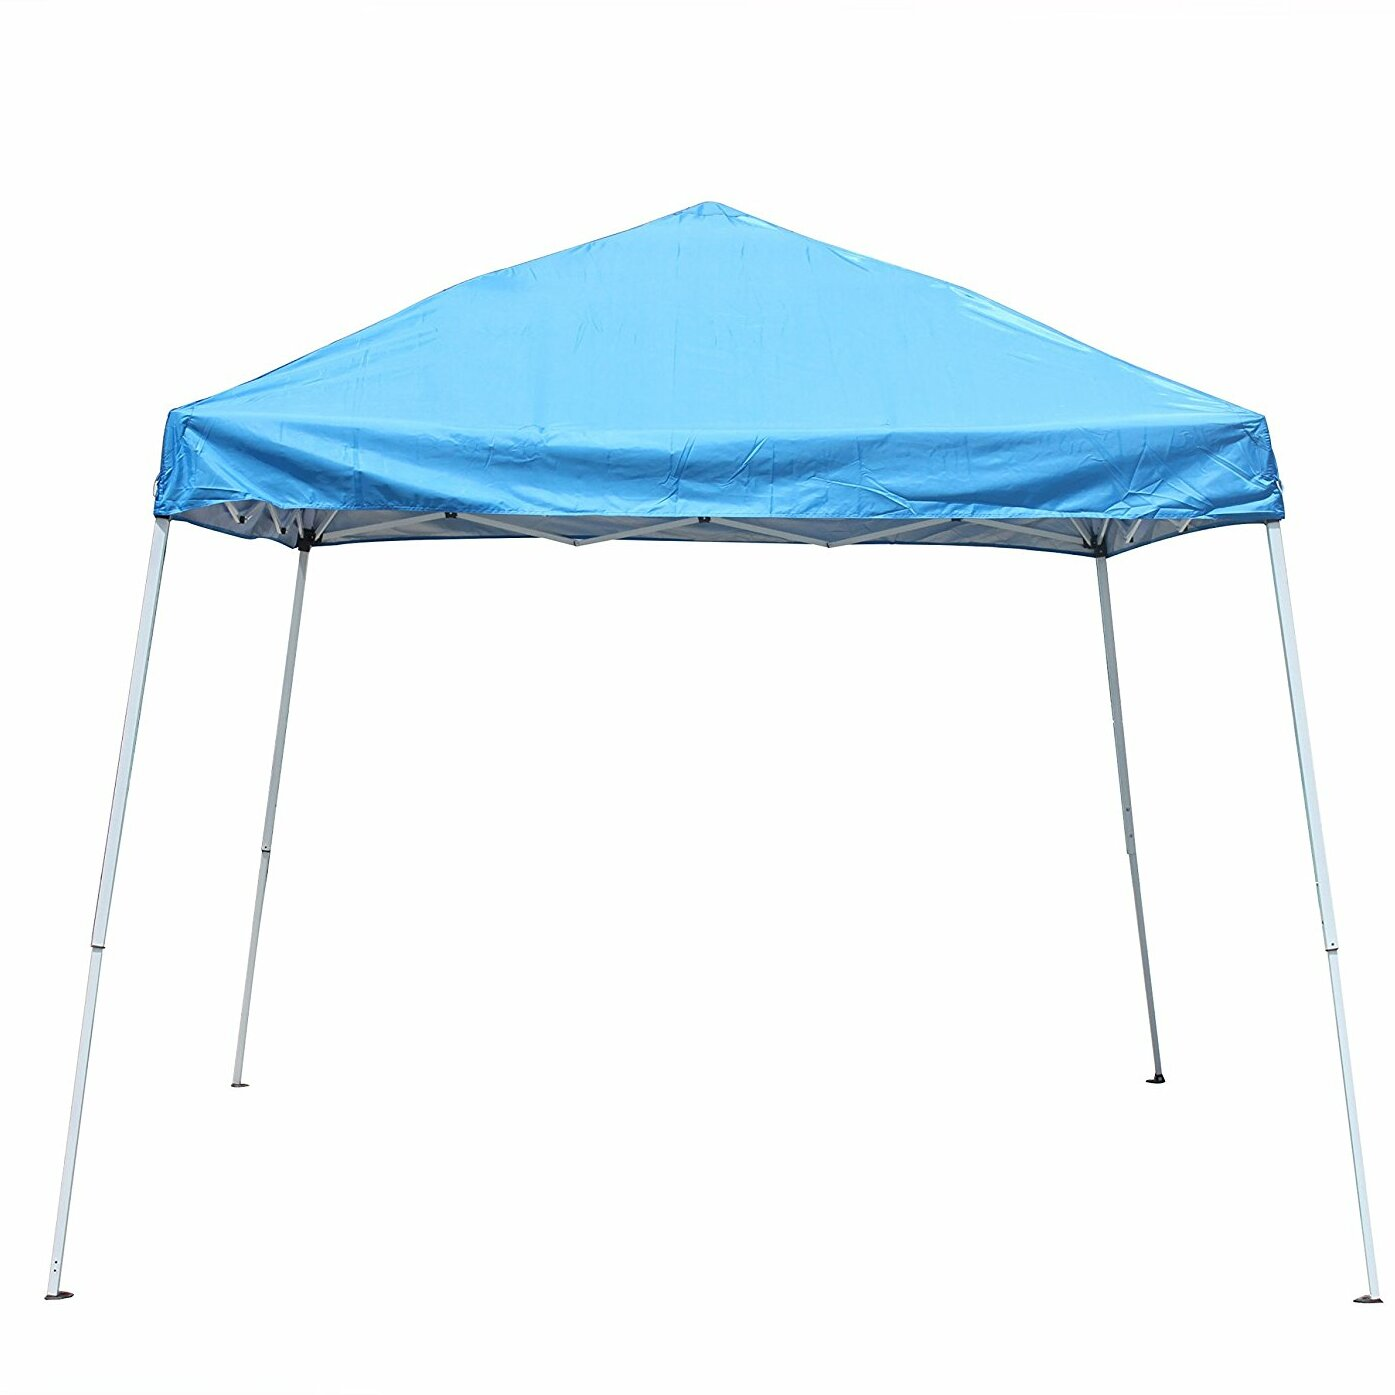 sc 1 st  Wayfair & Aleko Collapsible 8 Ft. W x 8 Ft. D Pop-Up Canopy u0026 Reviews | Wayfair